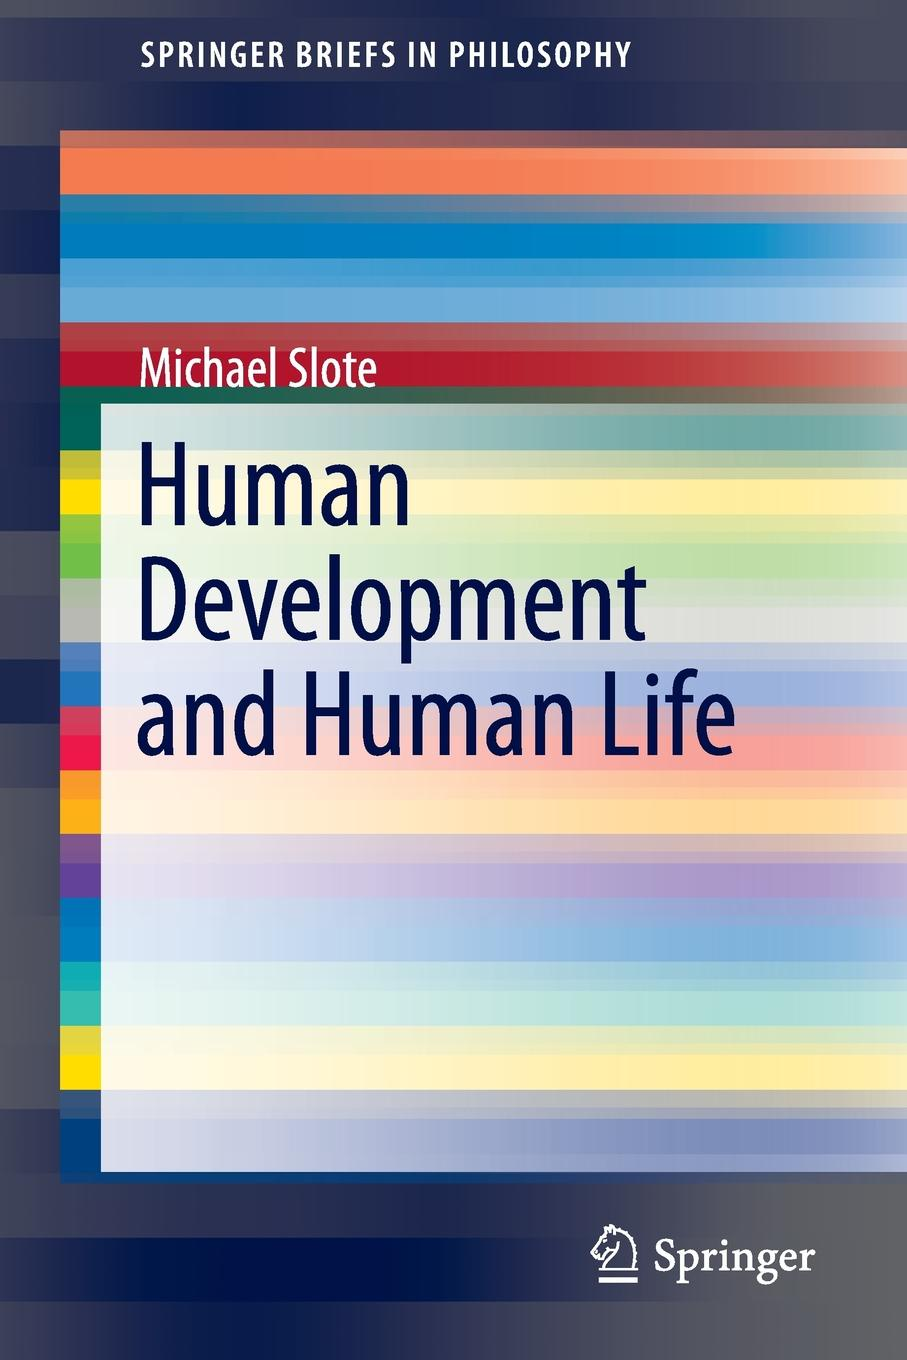 Michael Slote Human Development and Life